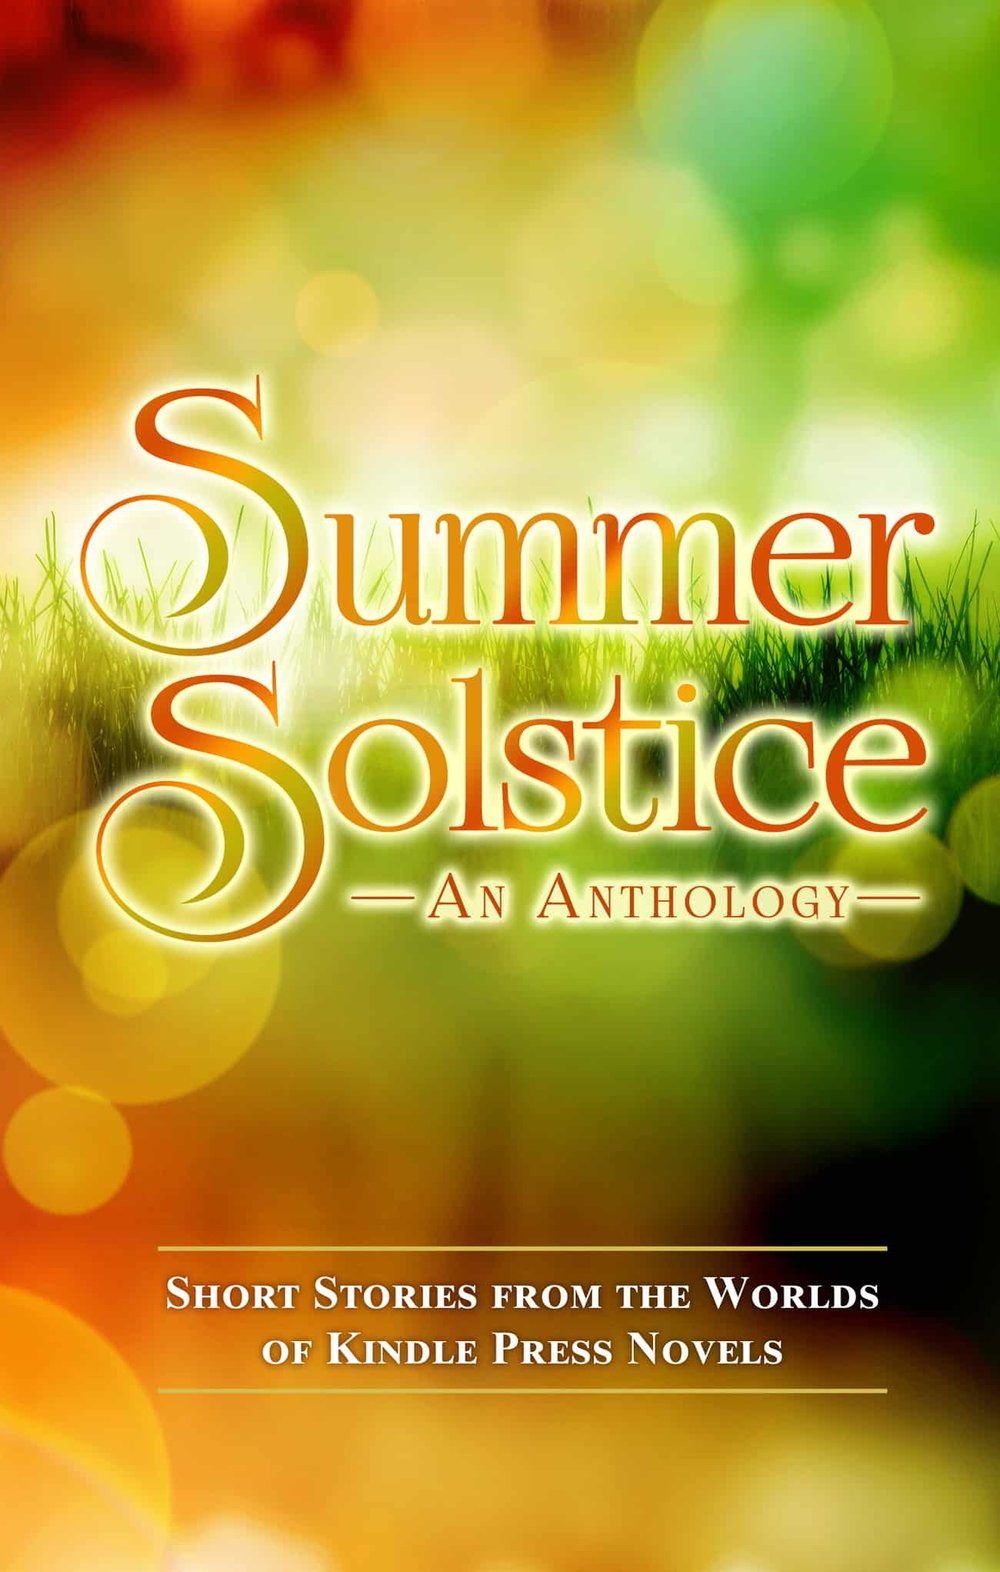 Summer Solstice Landing Page E-Book Cover